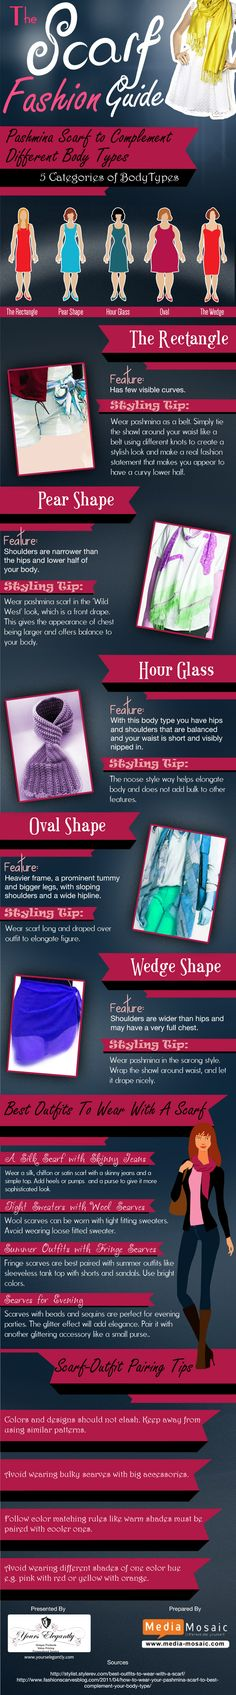 Yours Elegantly presents a wonderful Infographic titled 'The Scarf Fashion Guide' which gives the fashion guide for Pashmina Scarf to complement five